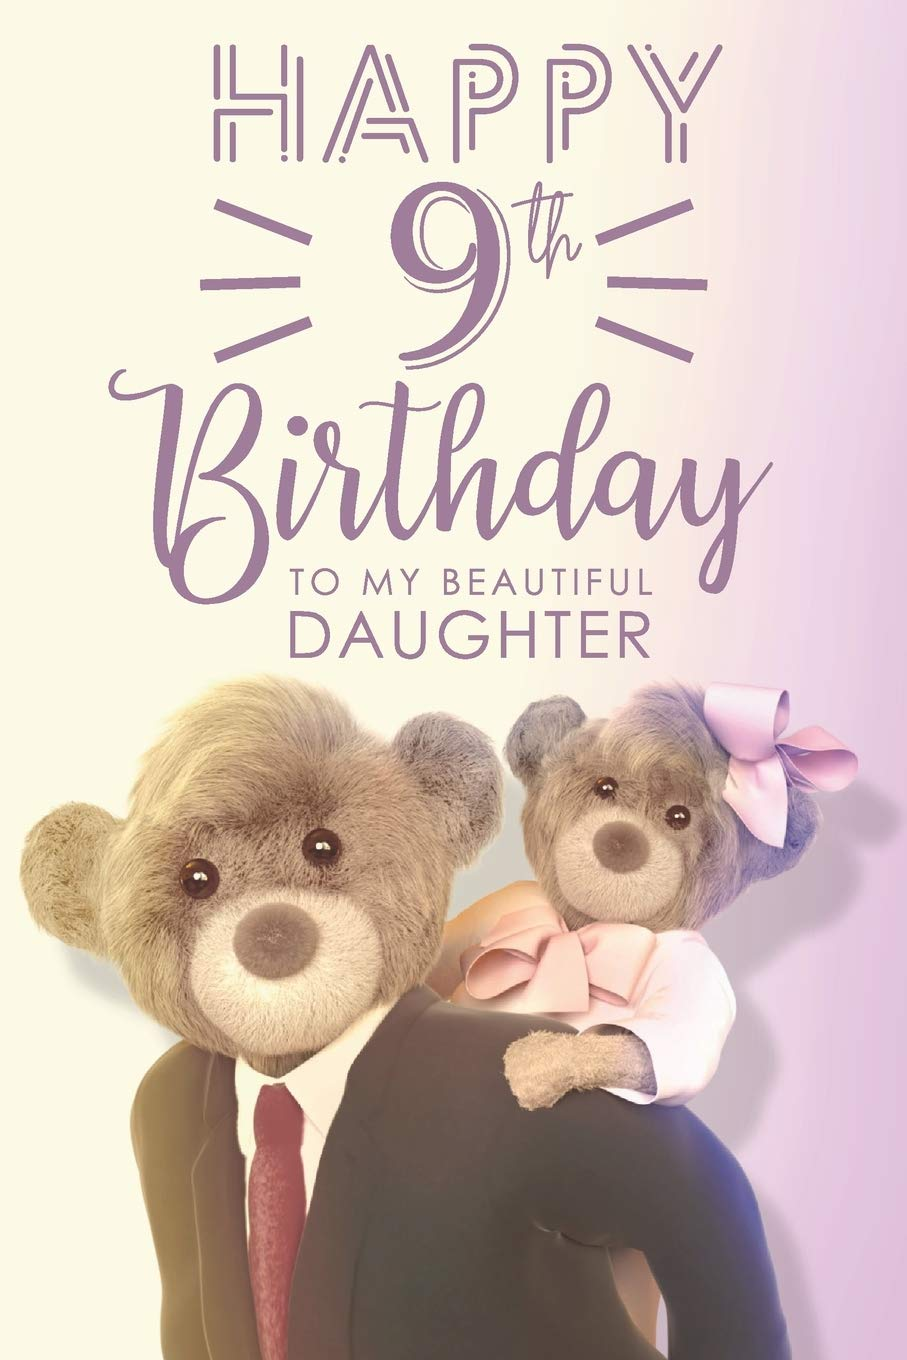 Happy 9th Birthday To My Beautiful Daughter Birthday Gift Journal And Sketchbook For 9 Years Old Girls Stylish Press 9781651022962 Amazon Com Books